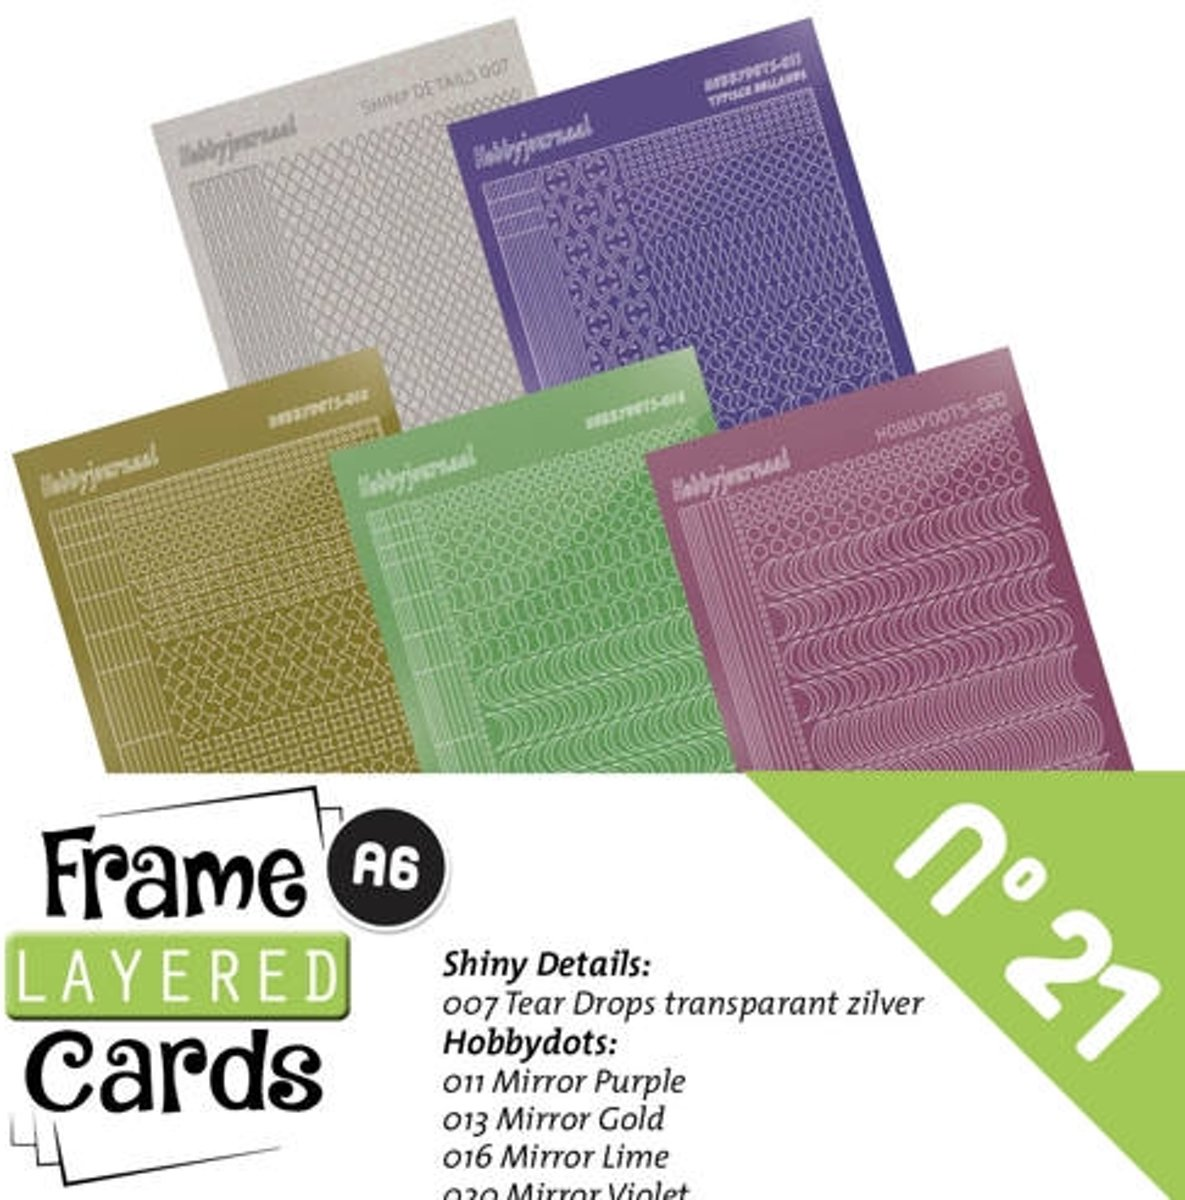 Frame LayeRood Cards 21 - Stickerset